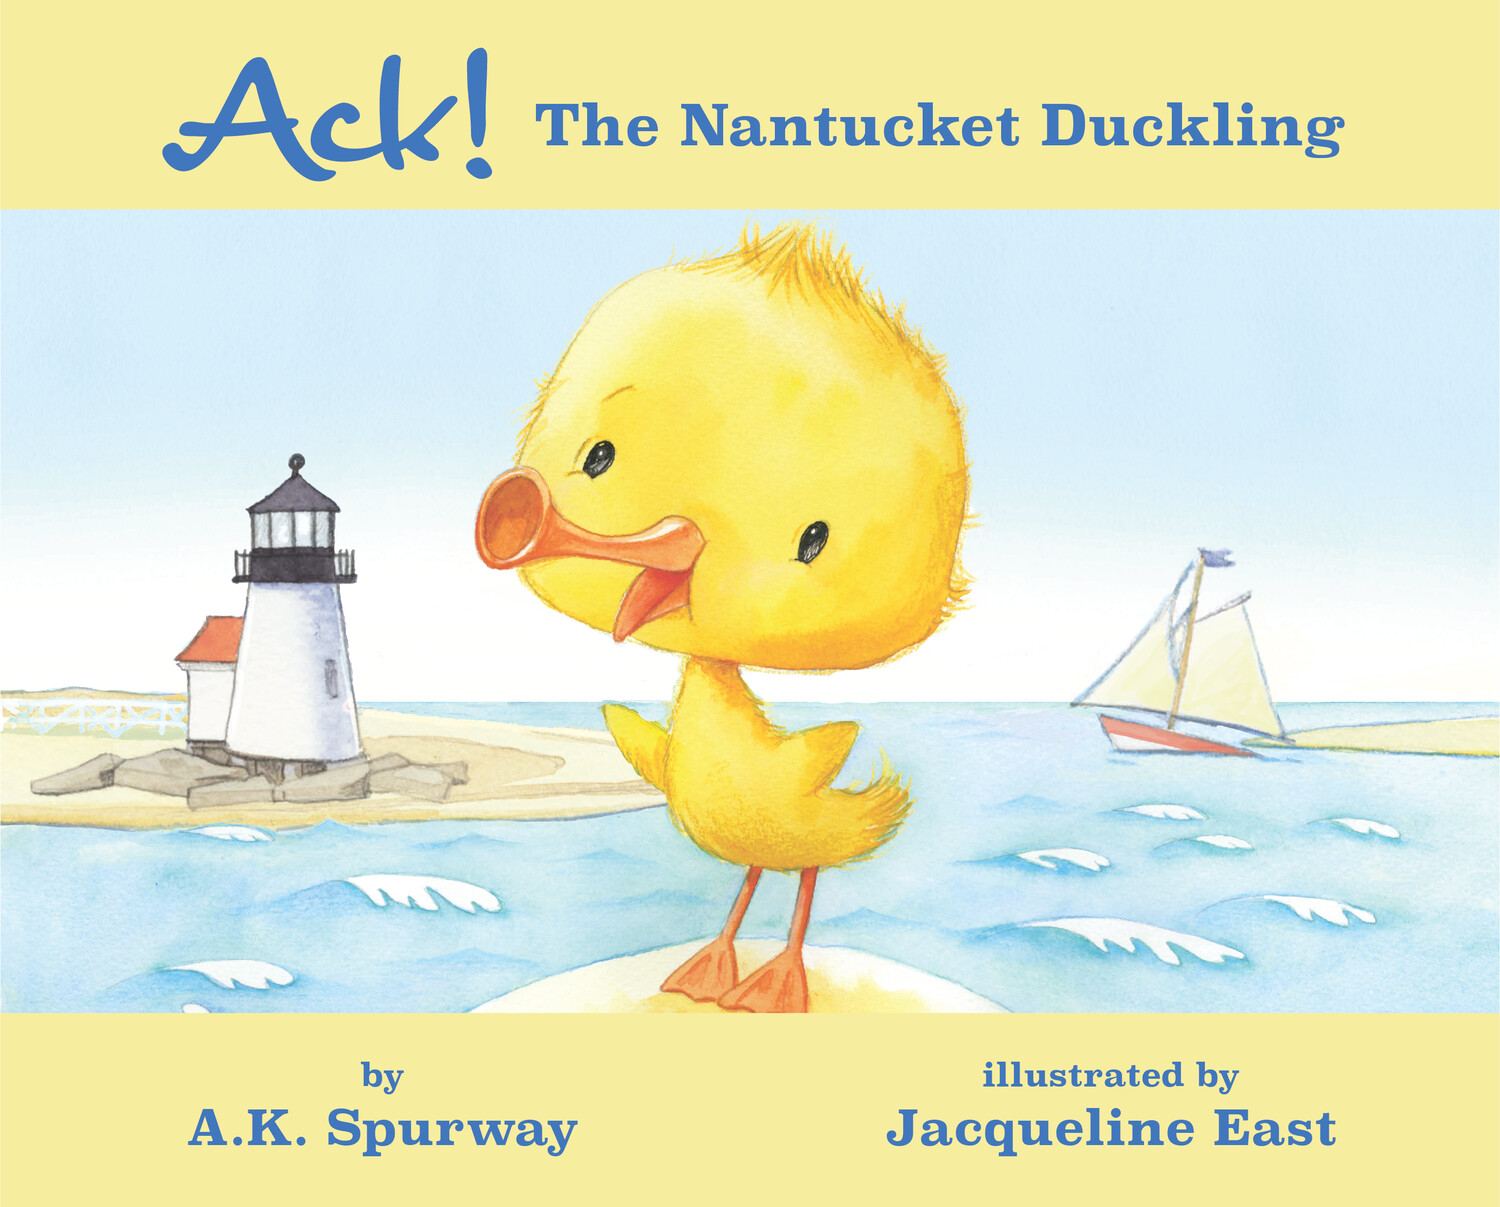 Ack! The Nantucket Duckling - Hardcover Version